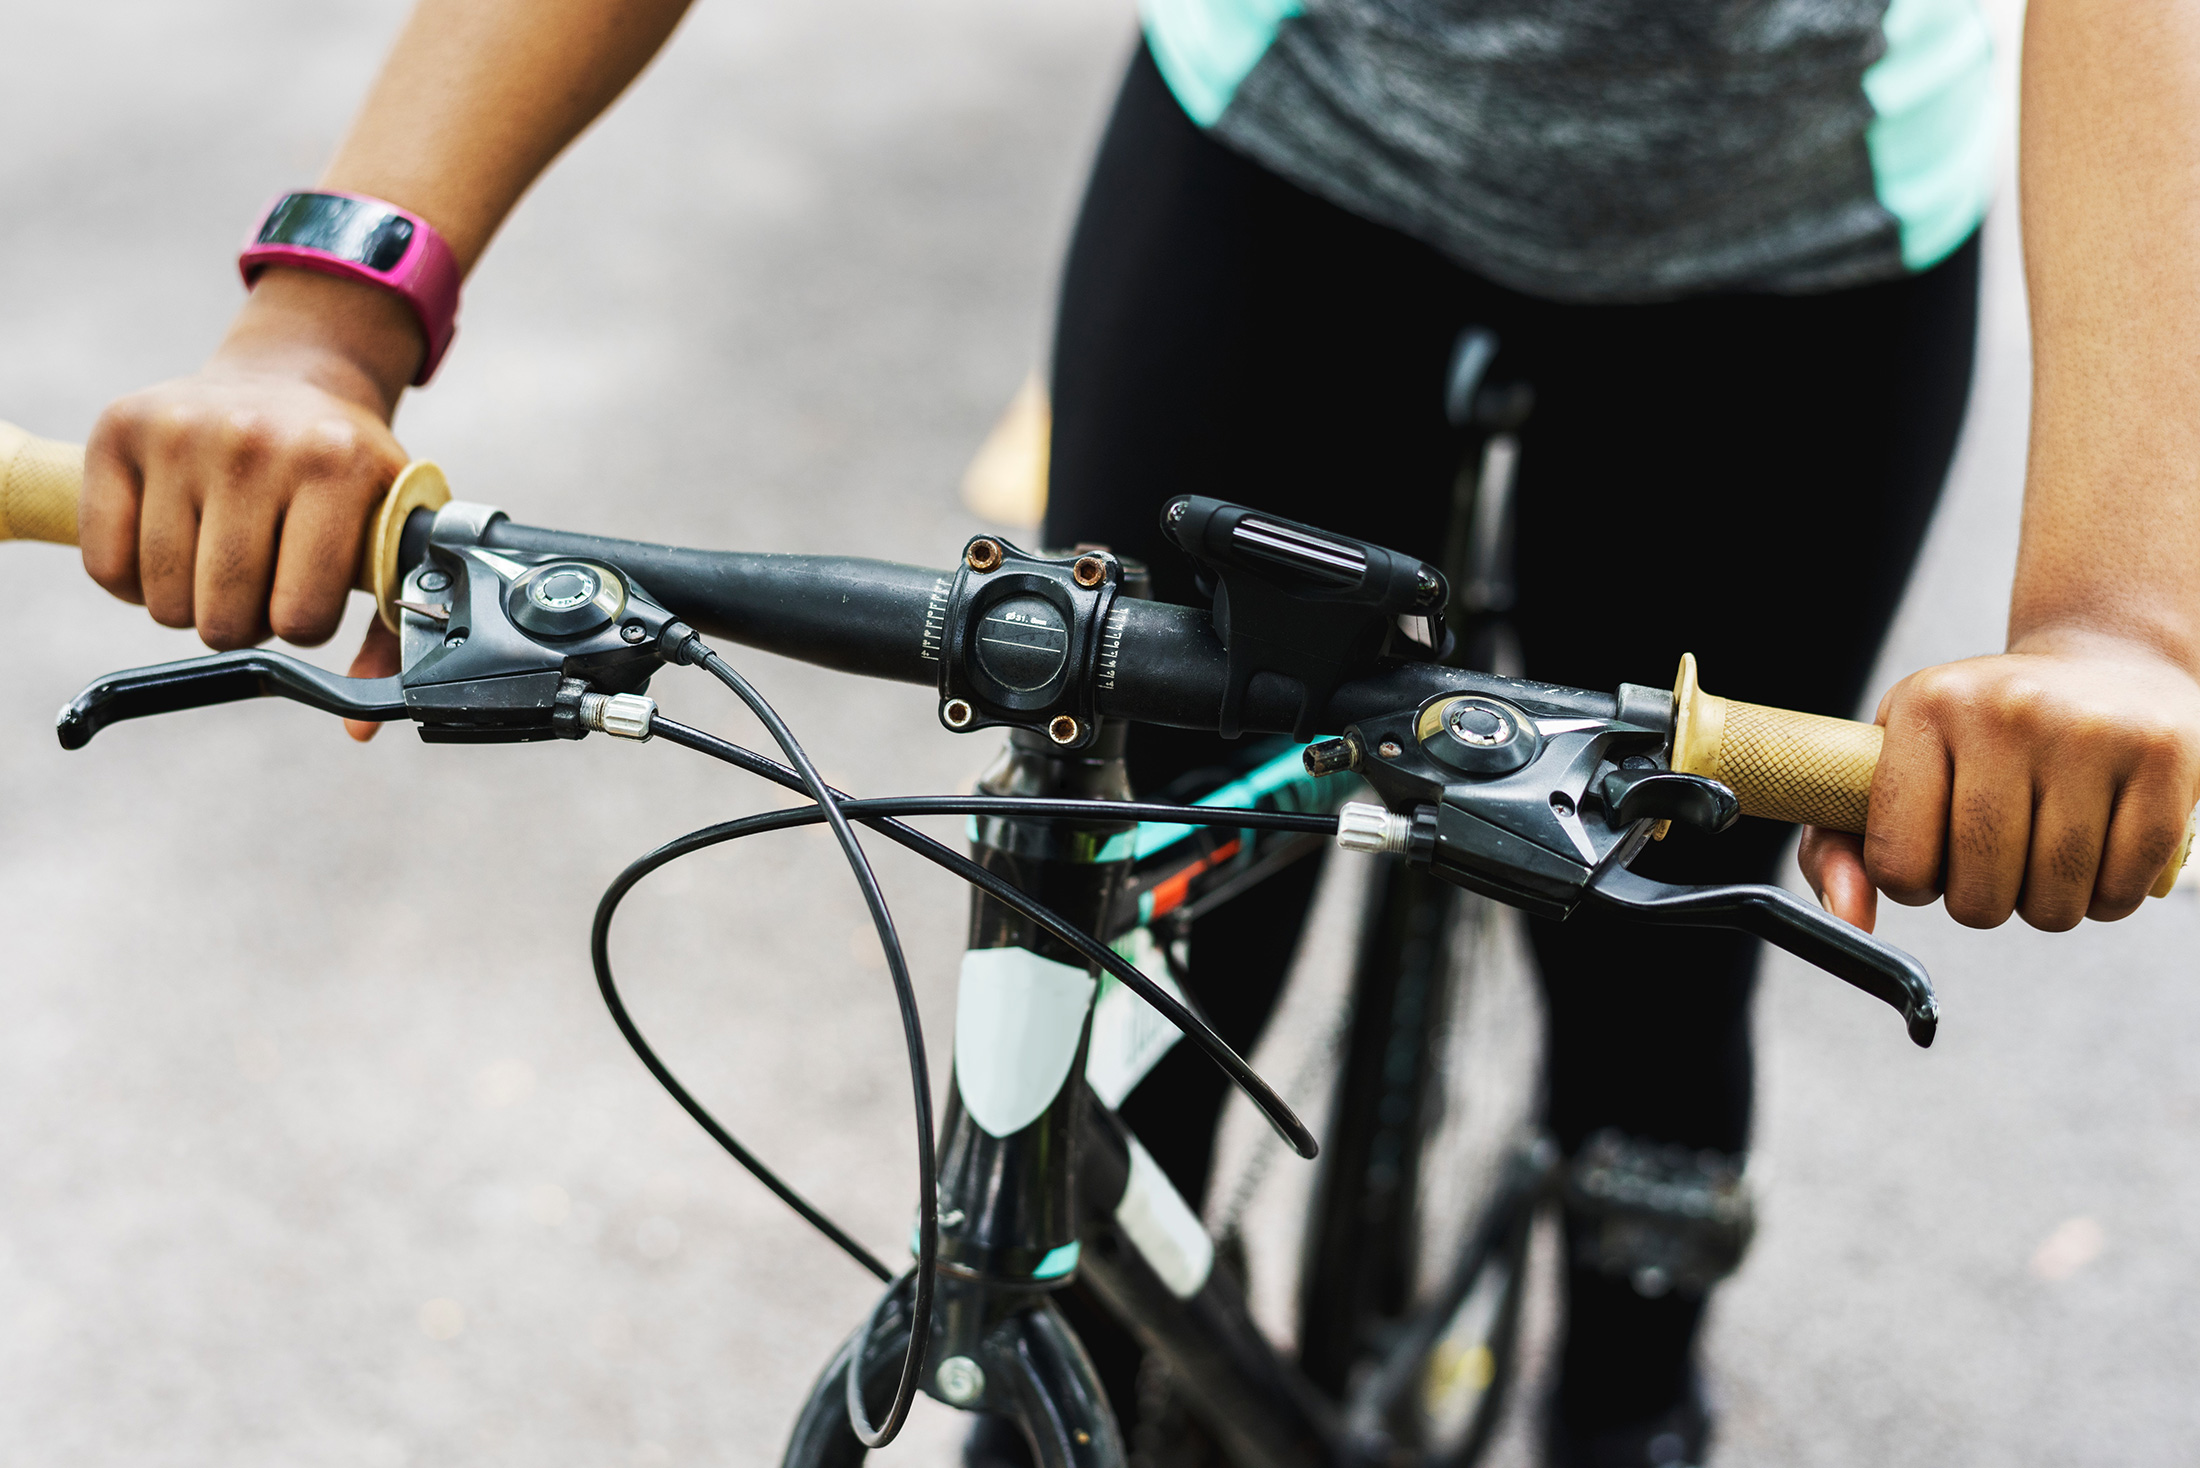 Close up of the handlebars of a bicycle partially showing the rider